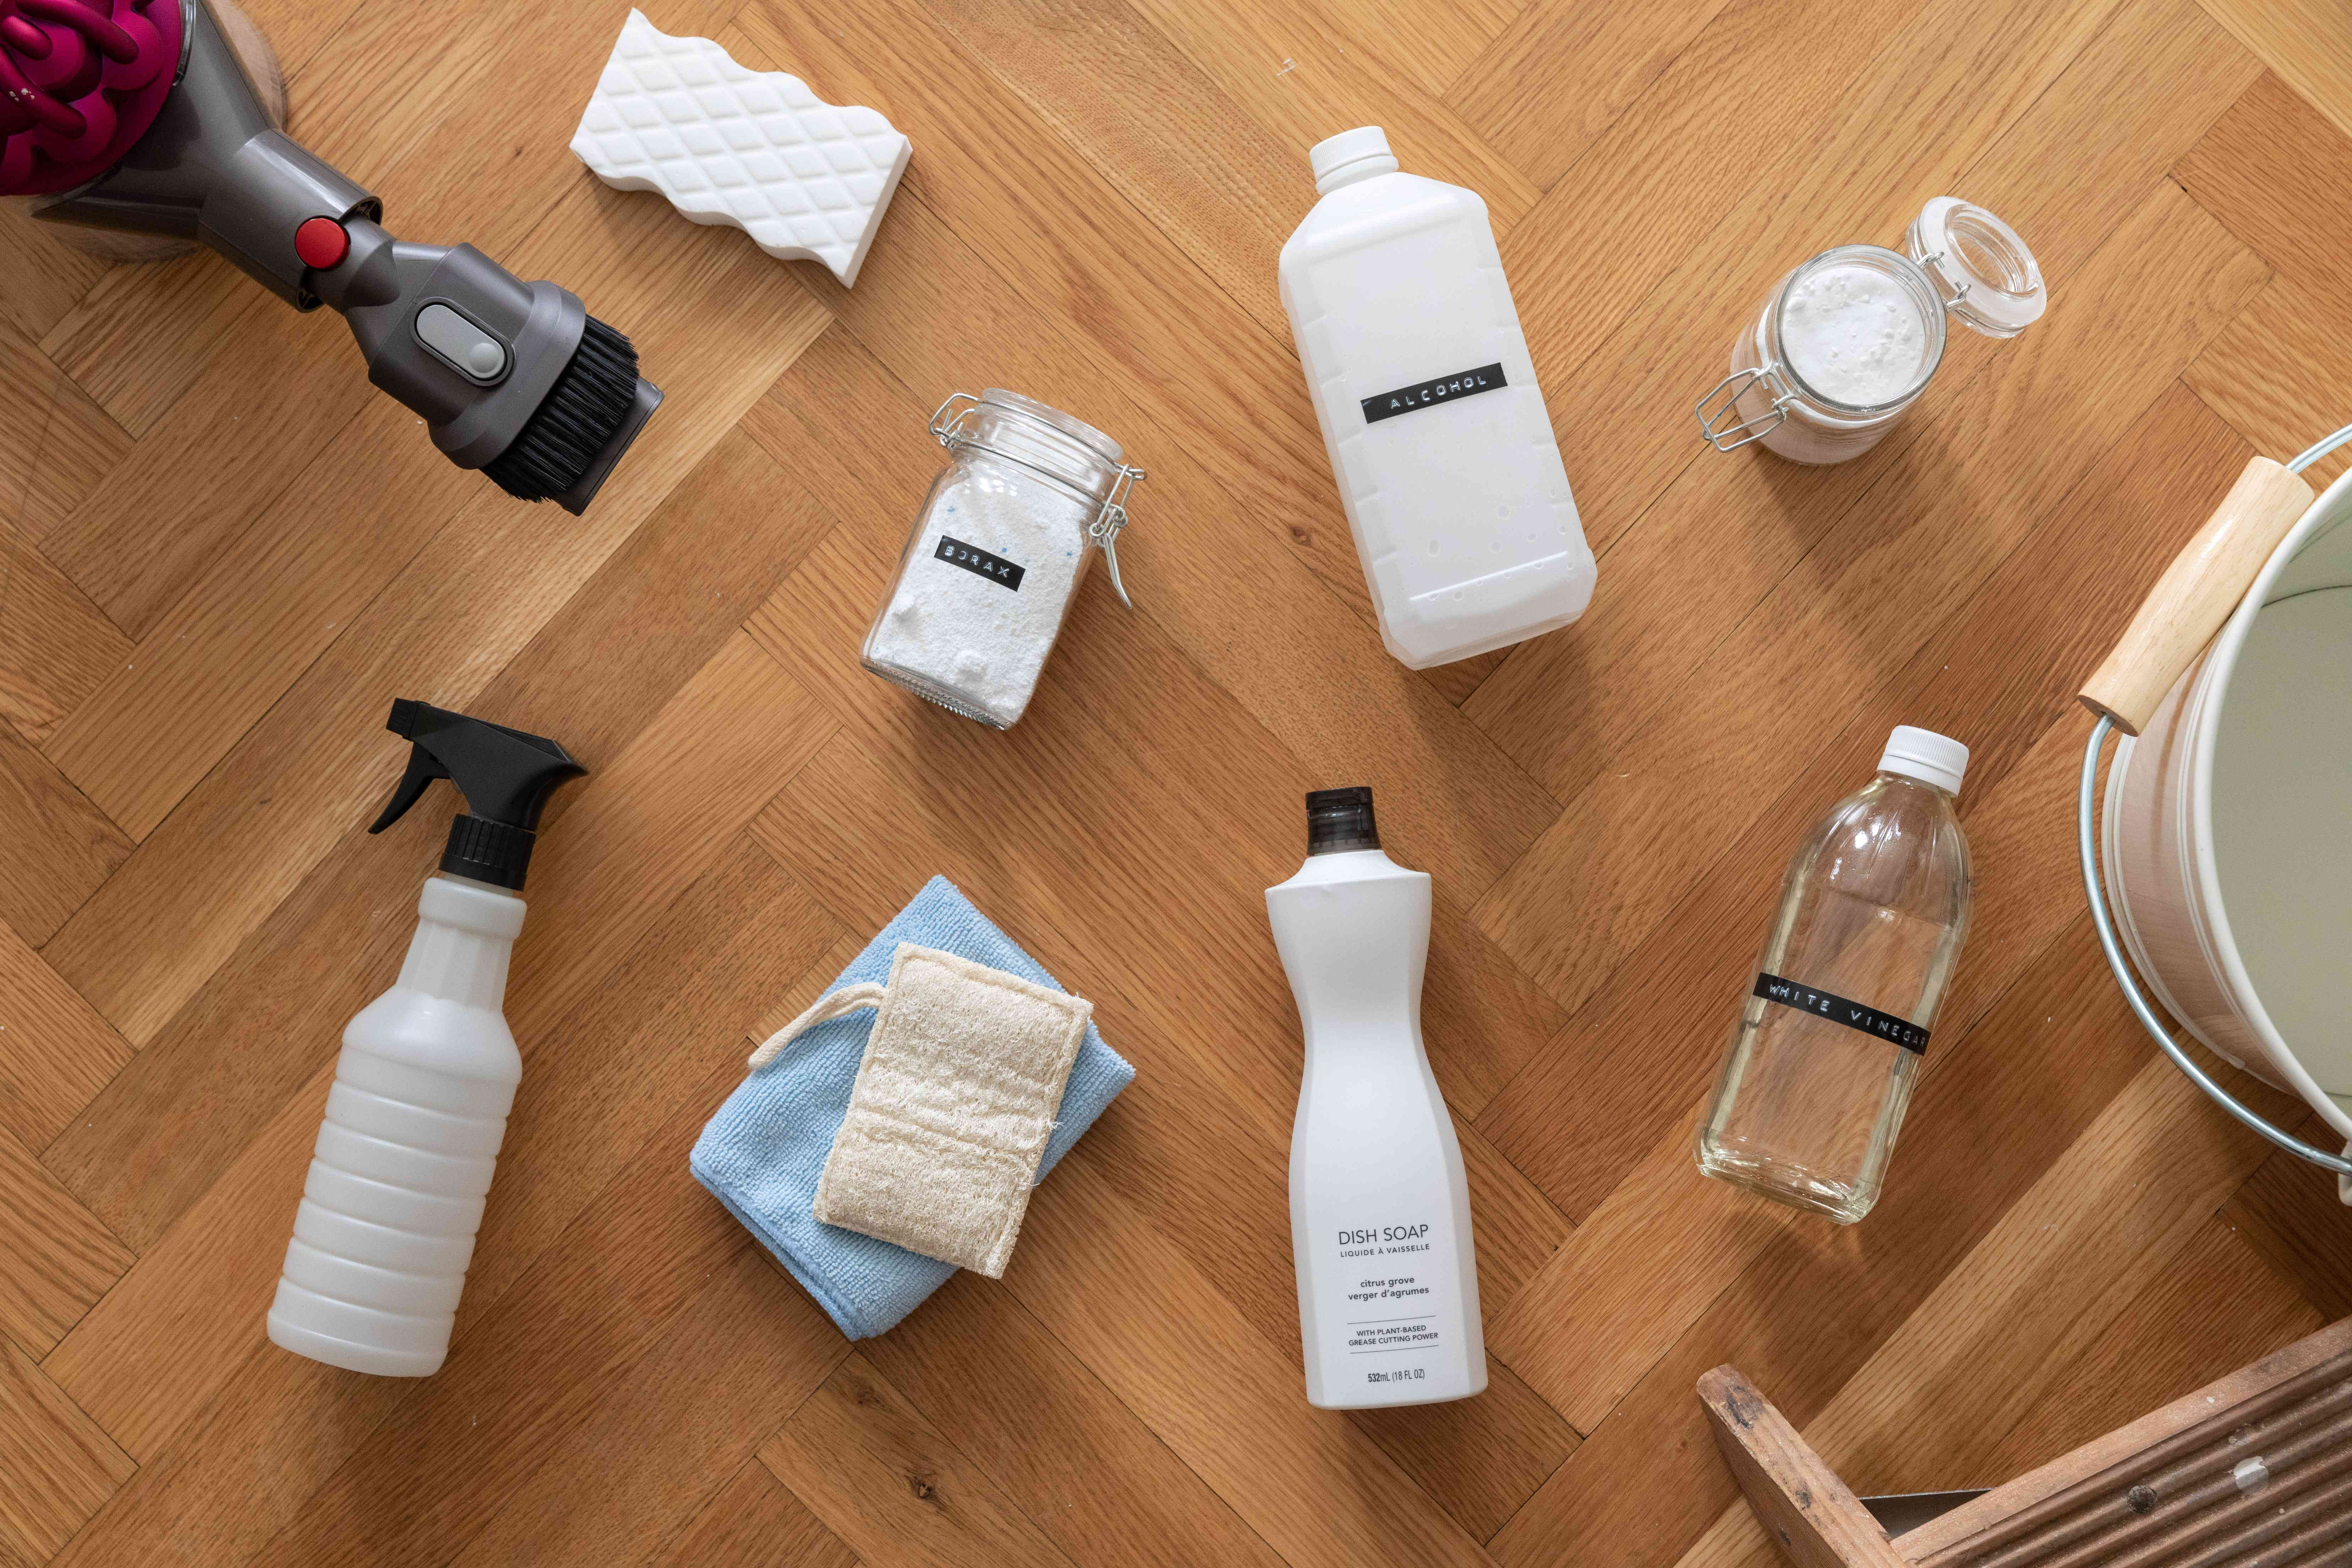 Materials and tools to clean walls